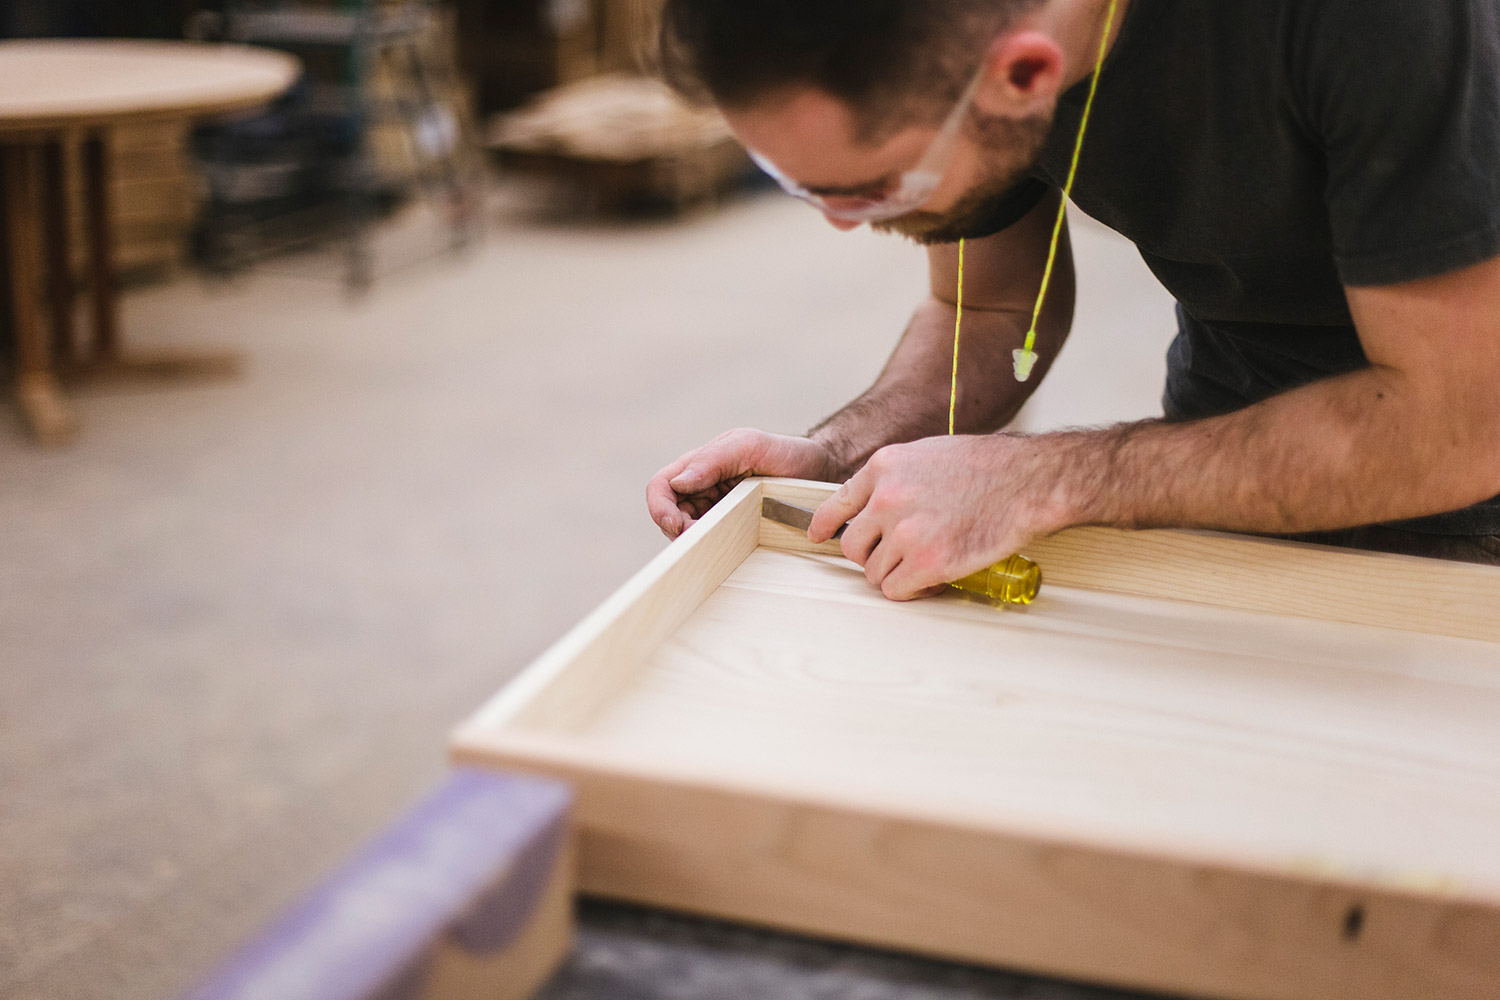 Ian Trundy finishes the edges of a desk drawer. Thomas Moser believes his furniture should last as long as the tree it came from.